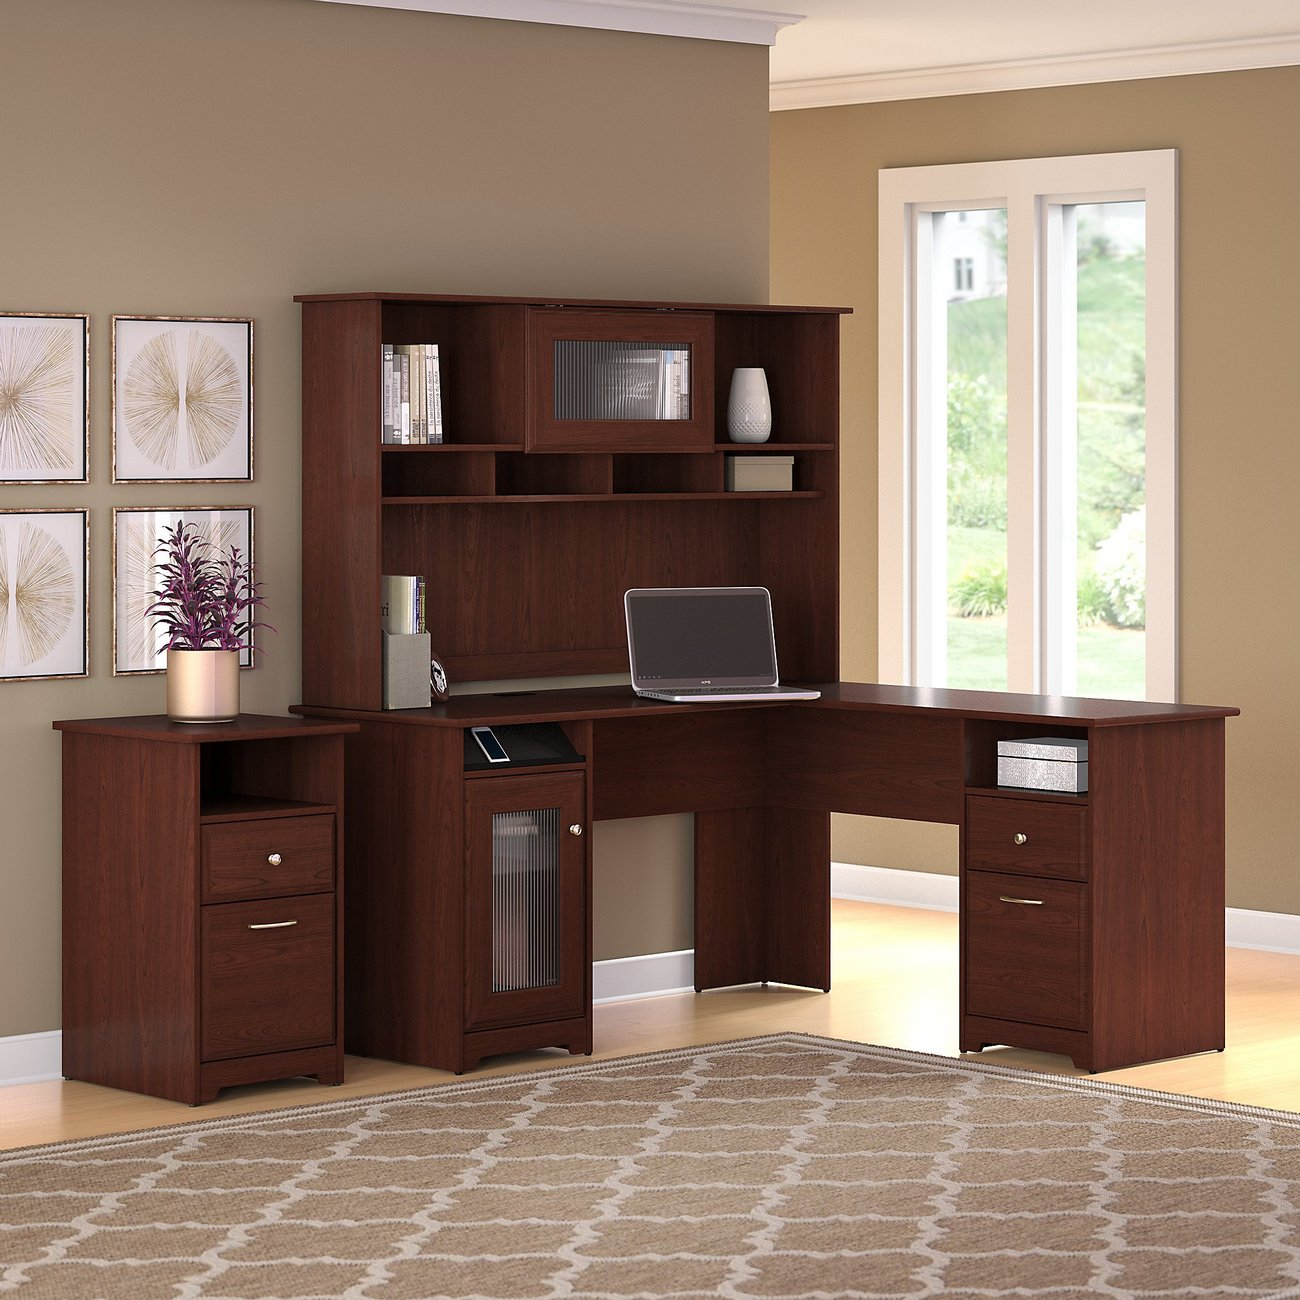 cabot with shop on heather bookcase cabinet shelf furniture gray cherry finish bush desk and in hutch file savings l shaped espresso lateral brown grey amazing